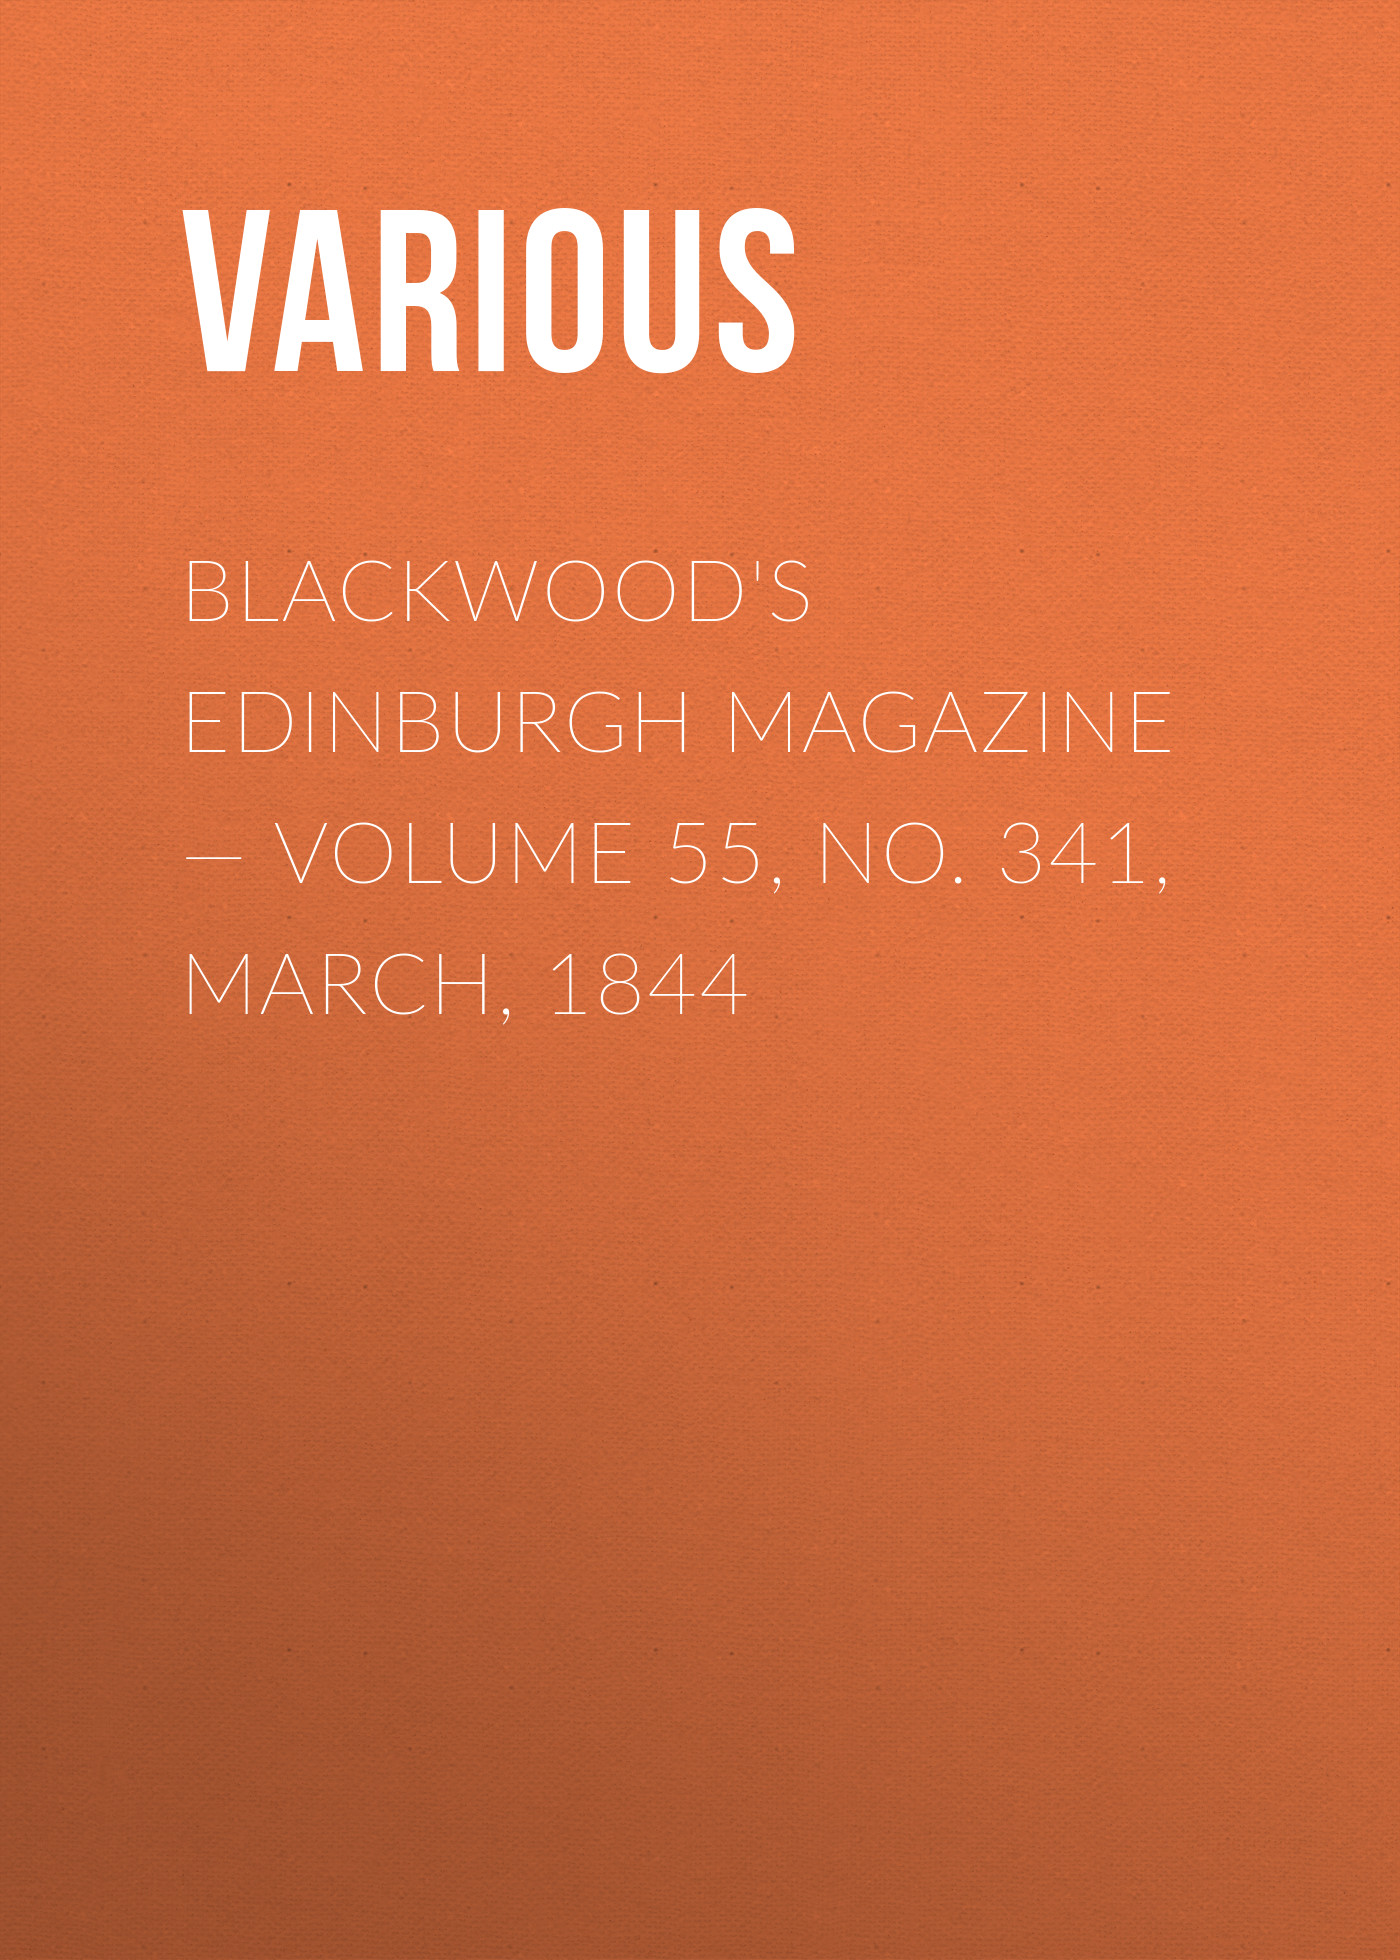 цена Various Blackwoods Edinburgh Magazine – Volume 55, No. 341, March, 1844